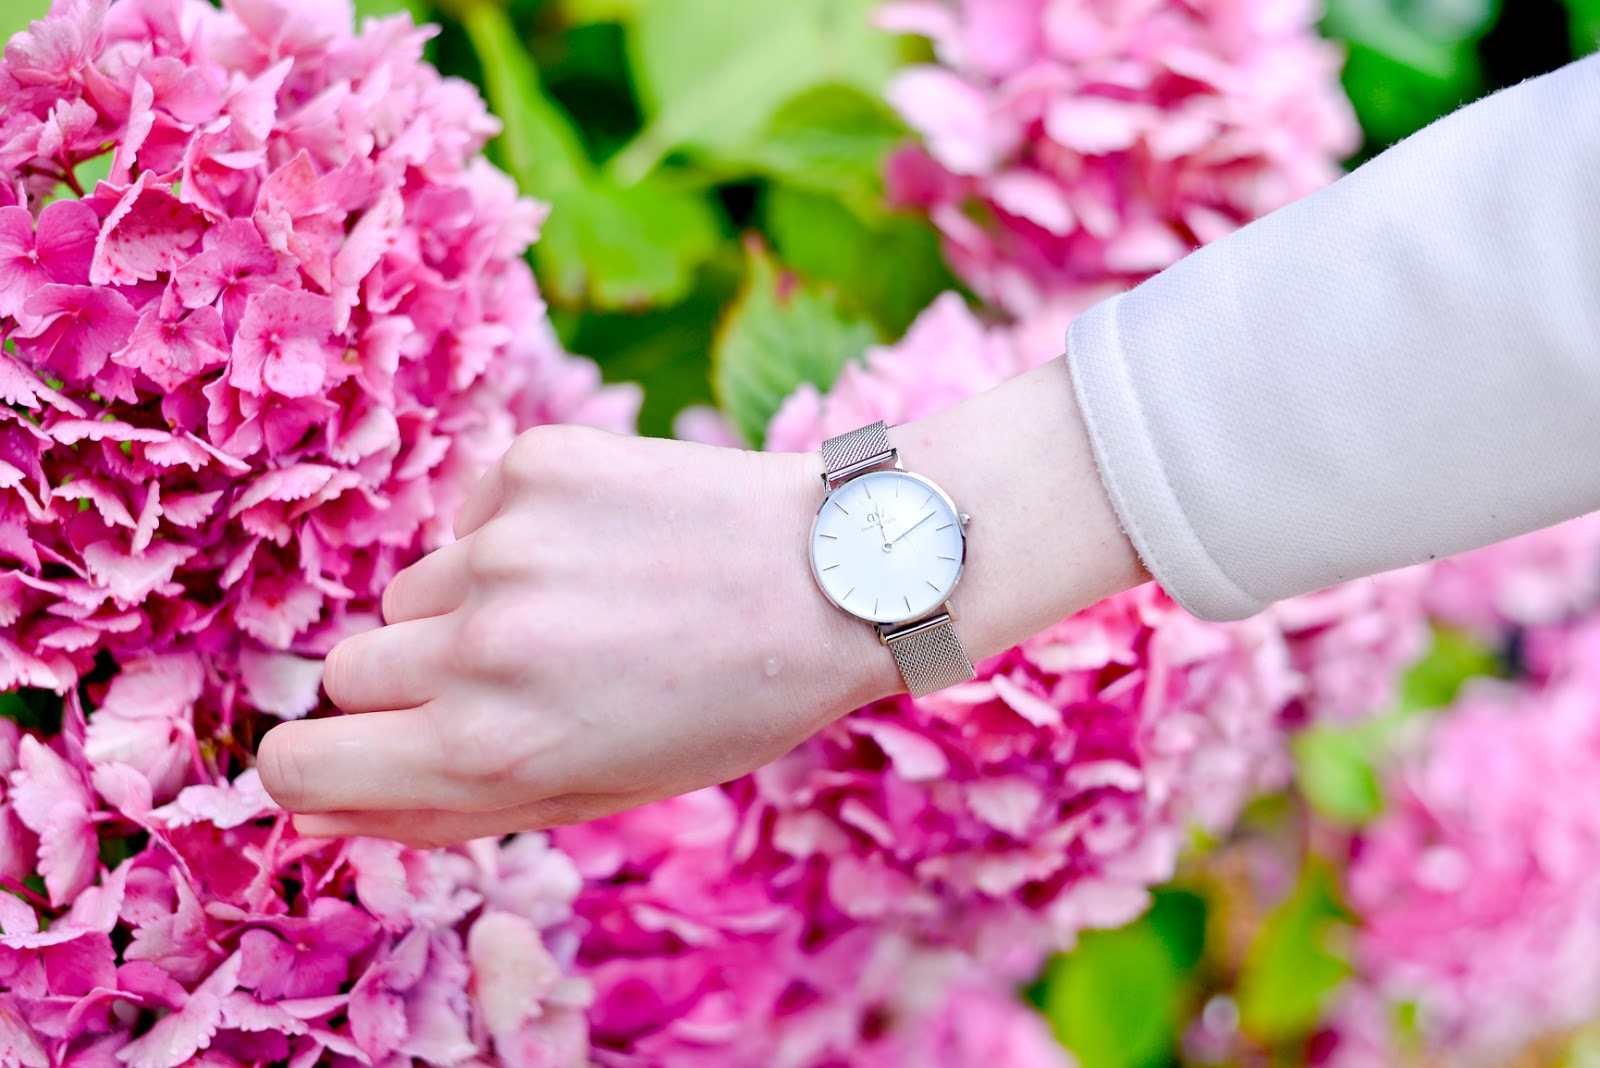 daniel wellington watch, claydon house, national trust properties, daniel wellington discount code